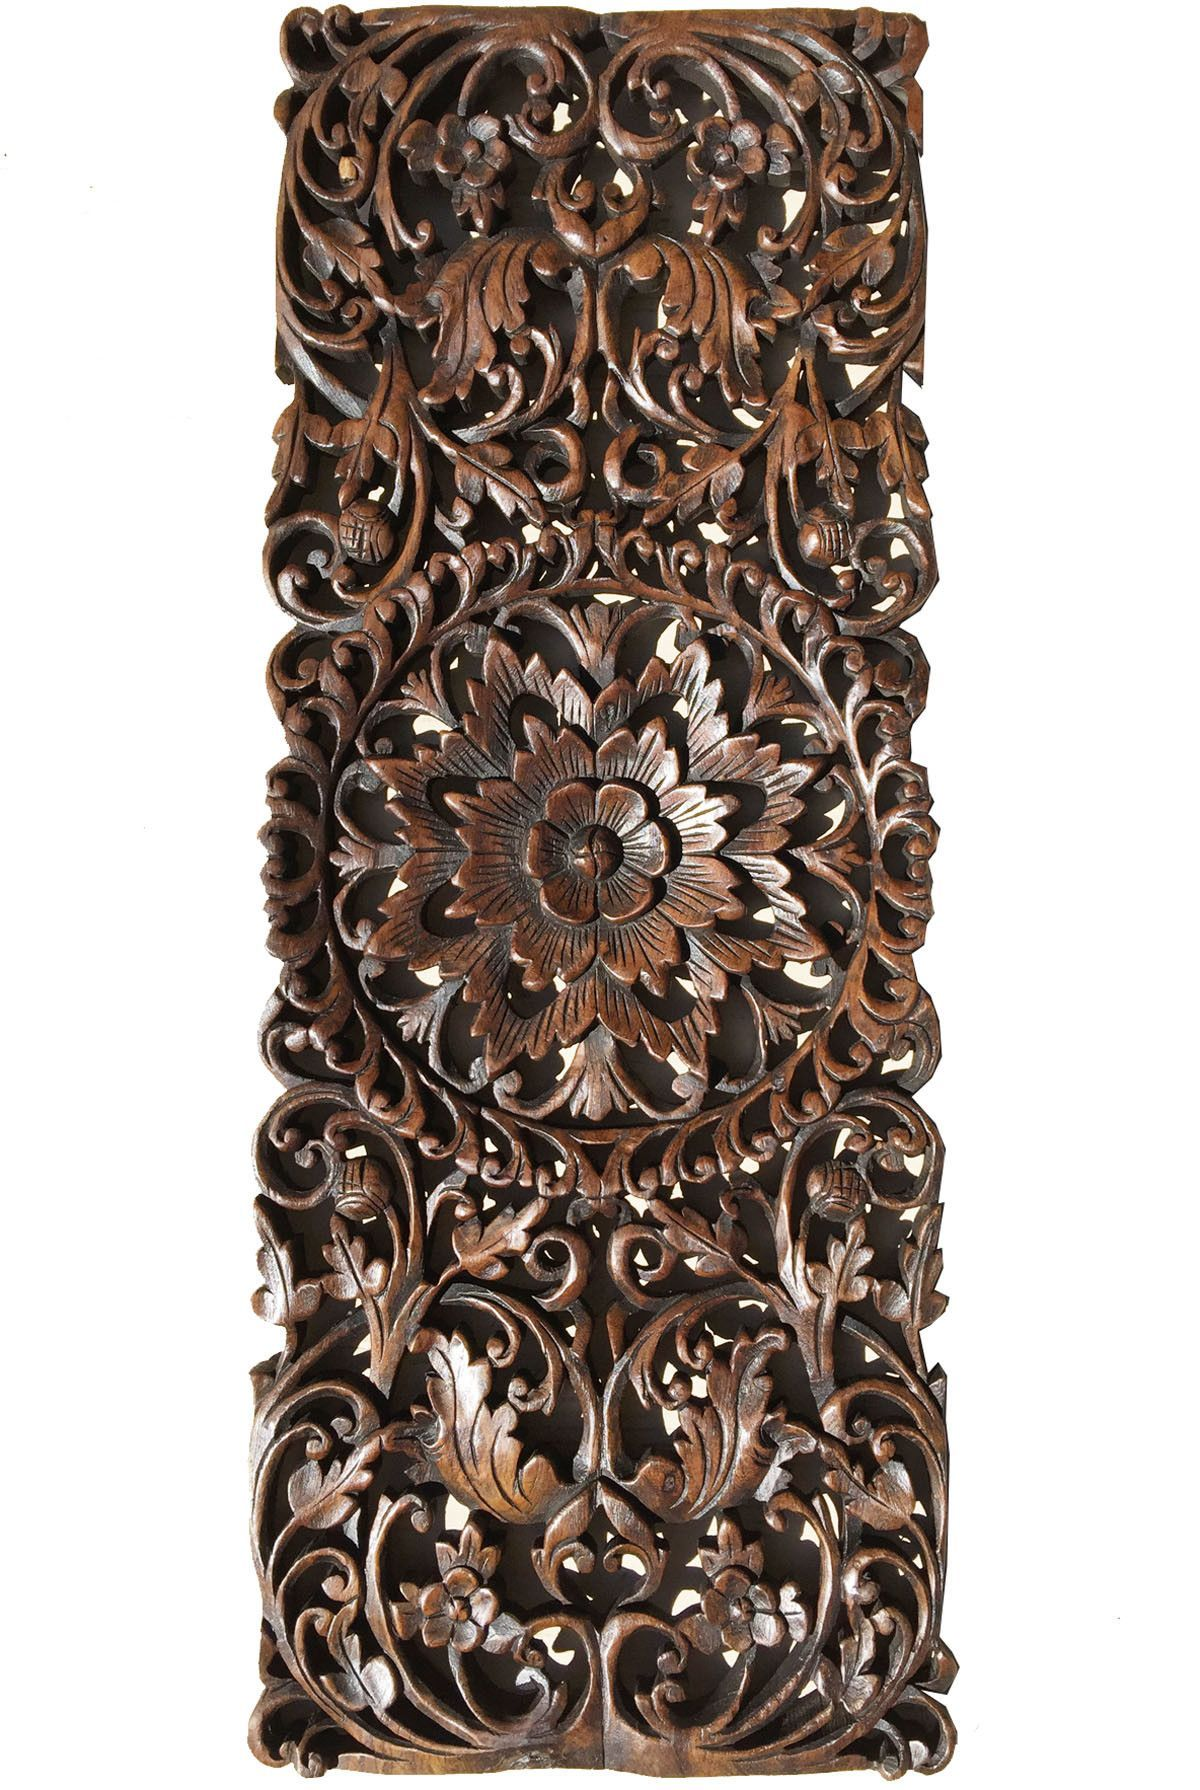 Floral tropical carved wood wall panel asian wall art home decor floral tropical carved wood wall panel asian wall art home decor large wood wall plaque 355x135 extra thick available in dark brown and black wash amipublicfo Images